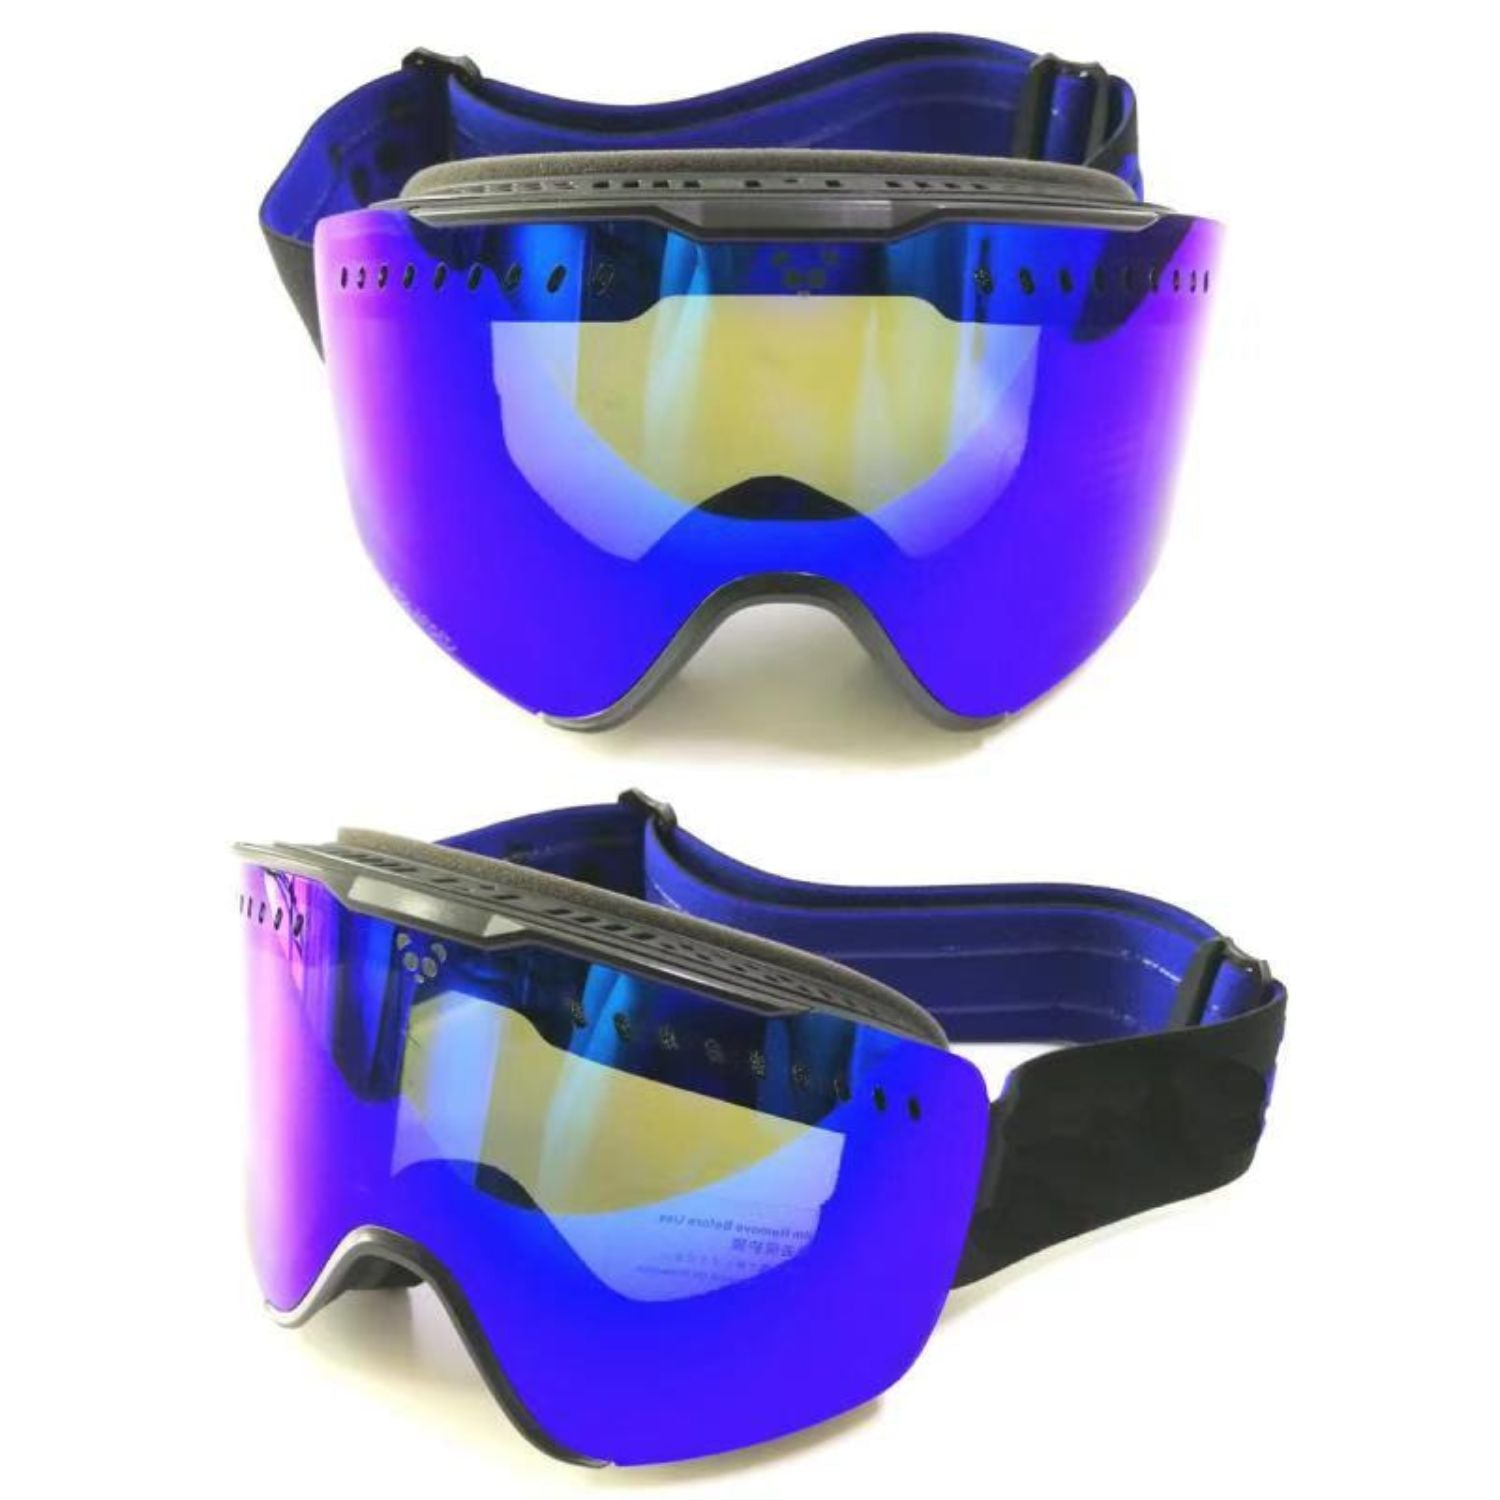 SG08 - Outdoor Snowboard Ski UV Protection Goggles